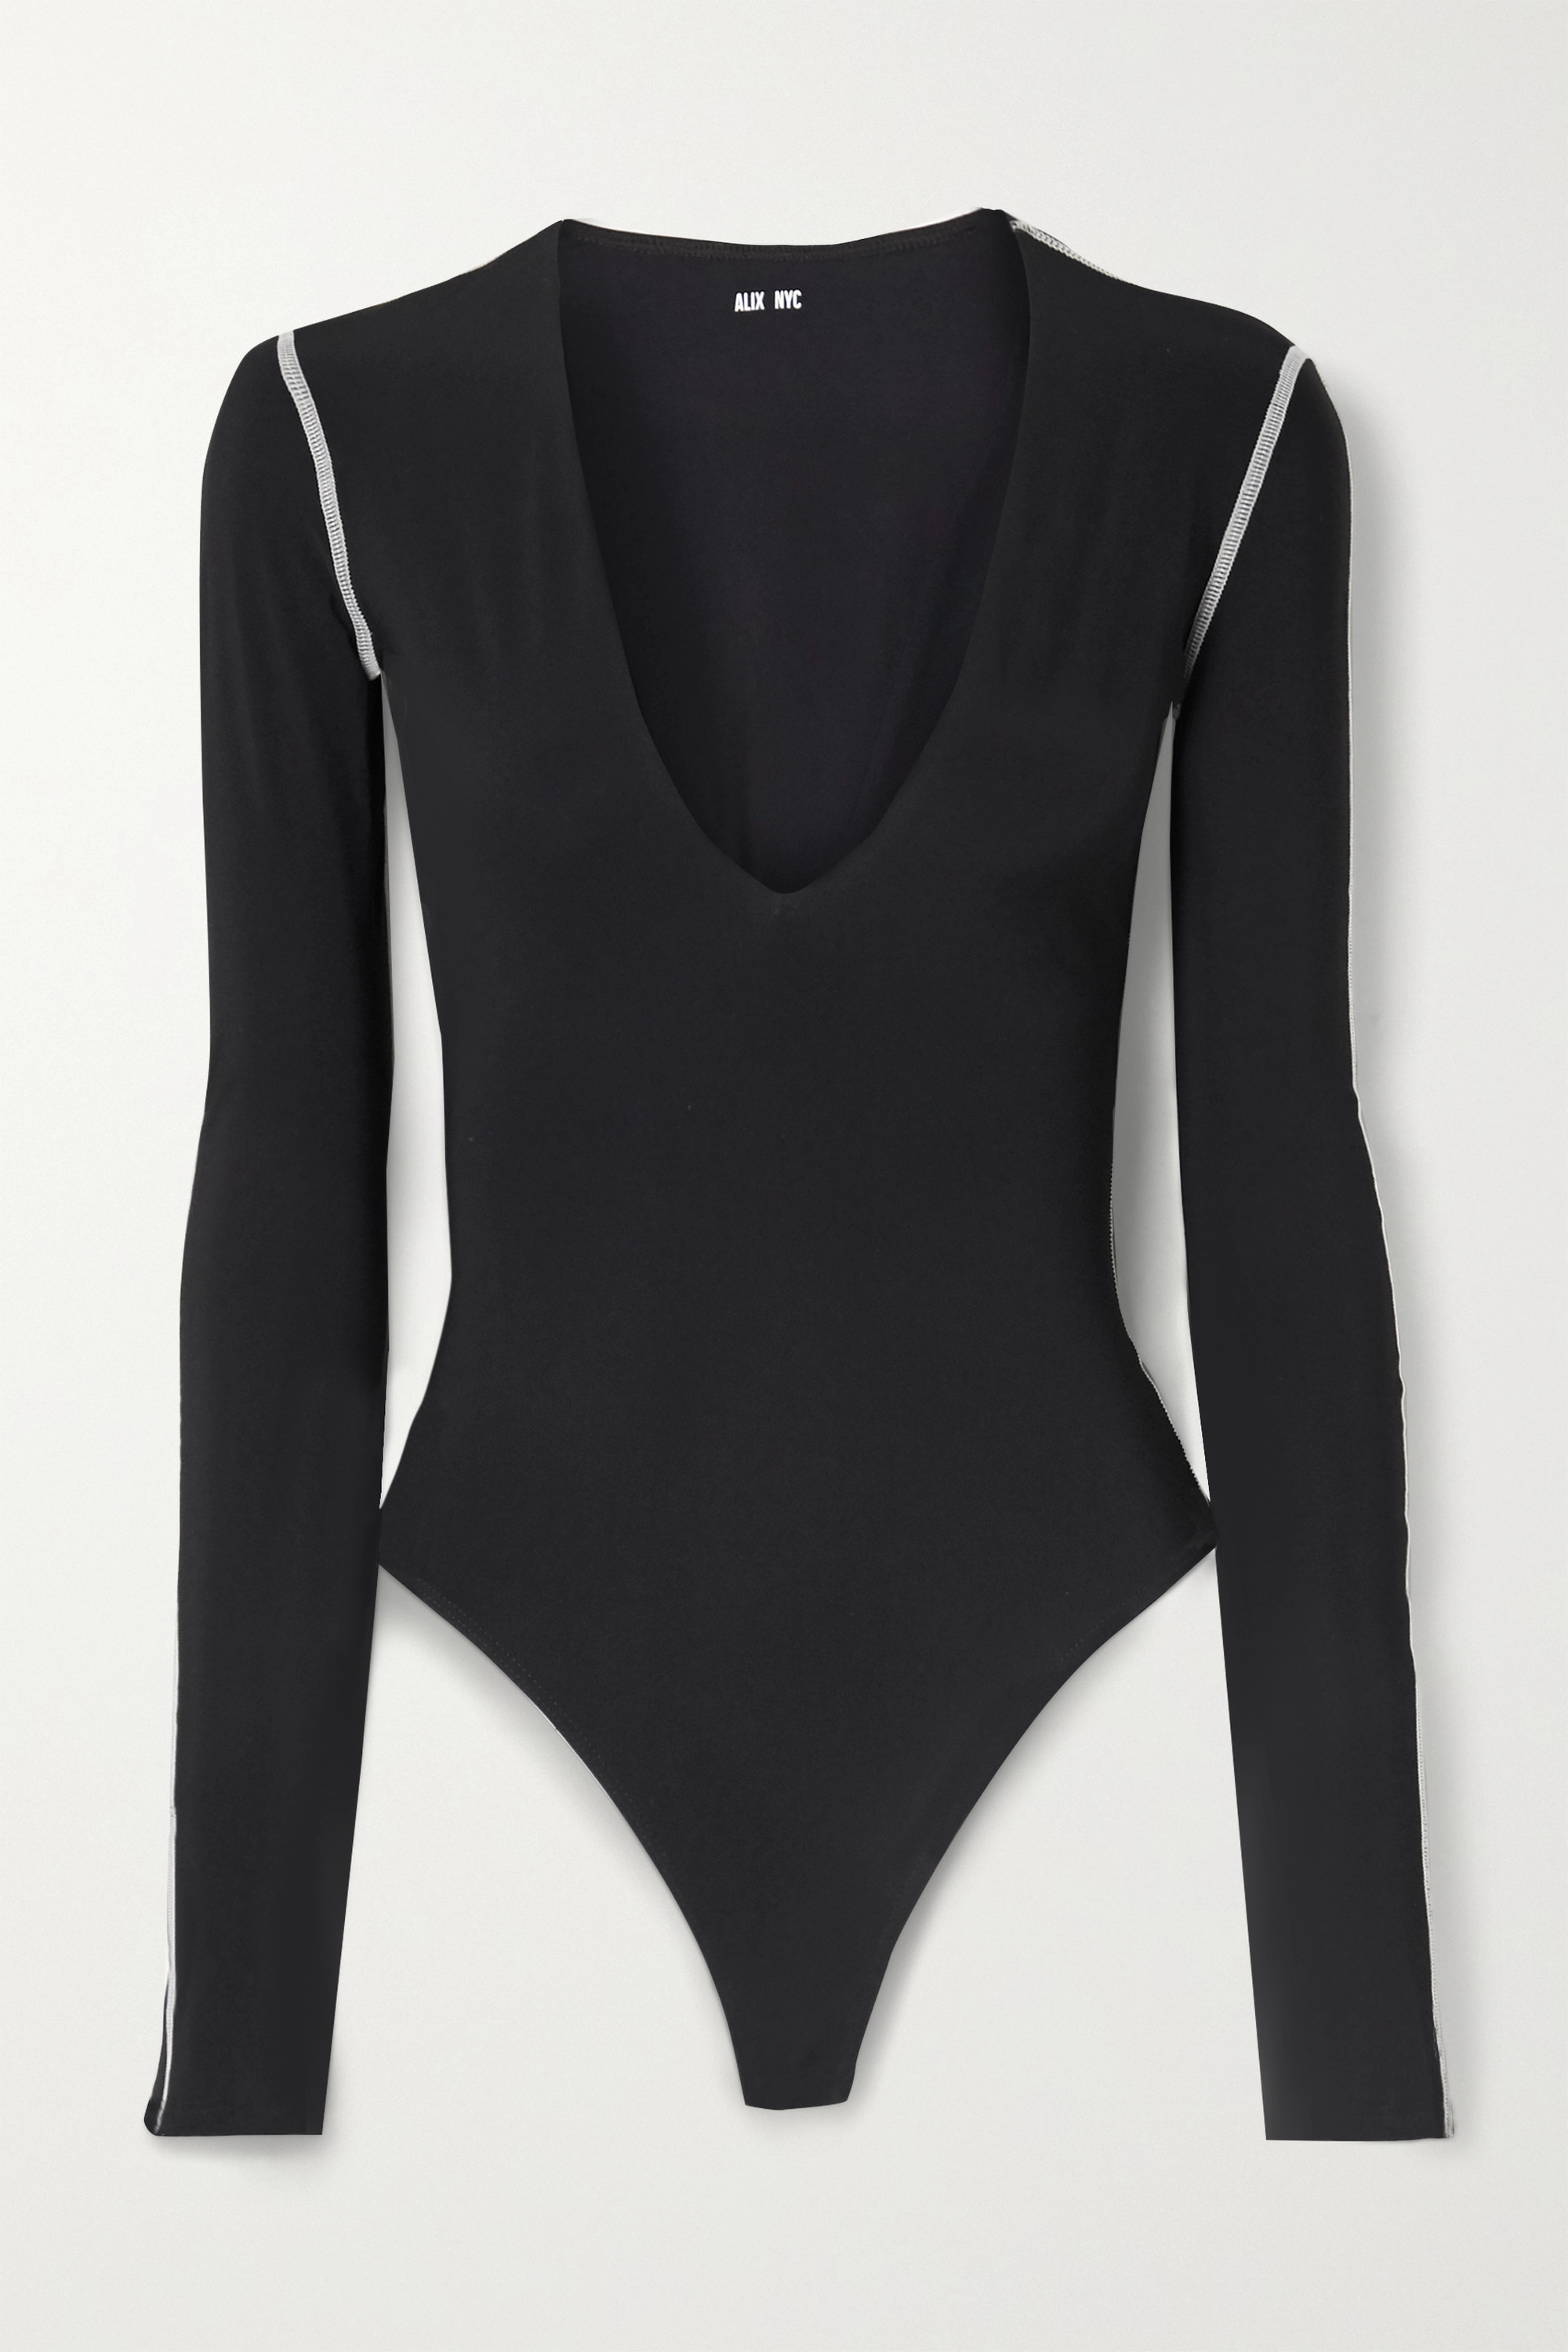 Alix NYC Irving stretch-jersey thong bodysuit